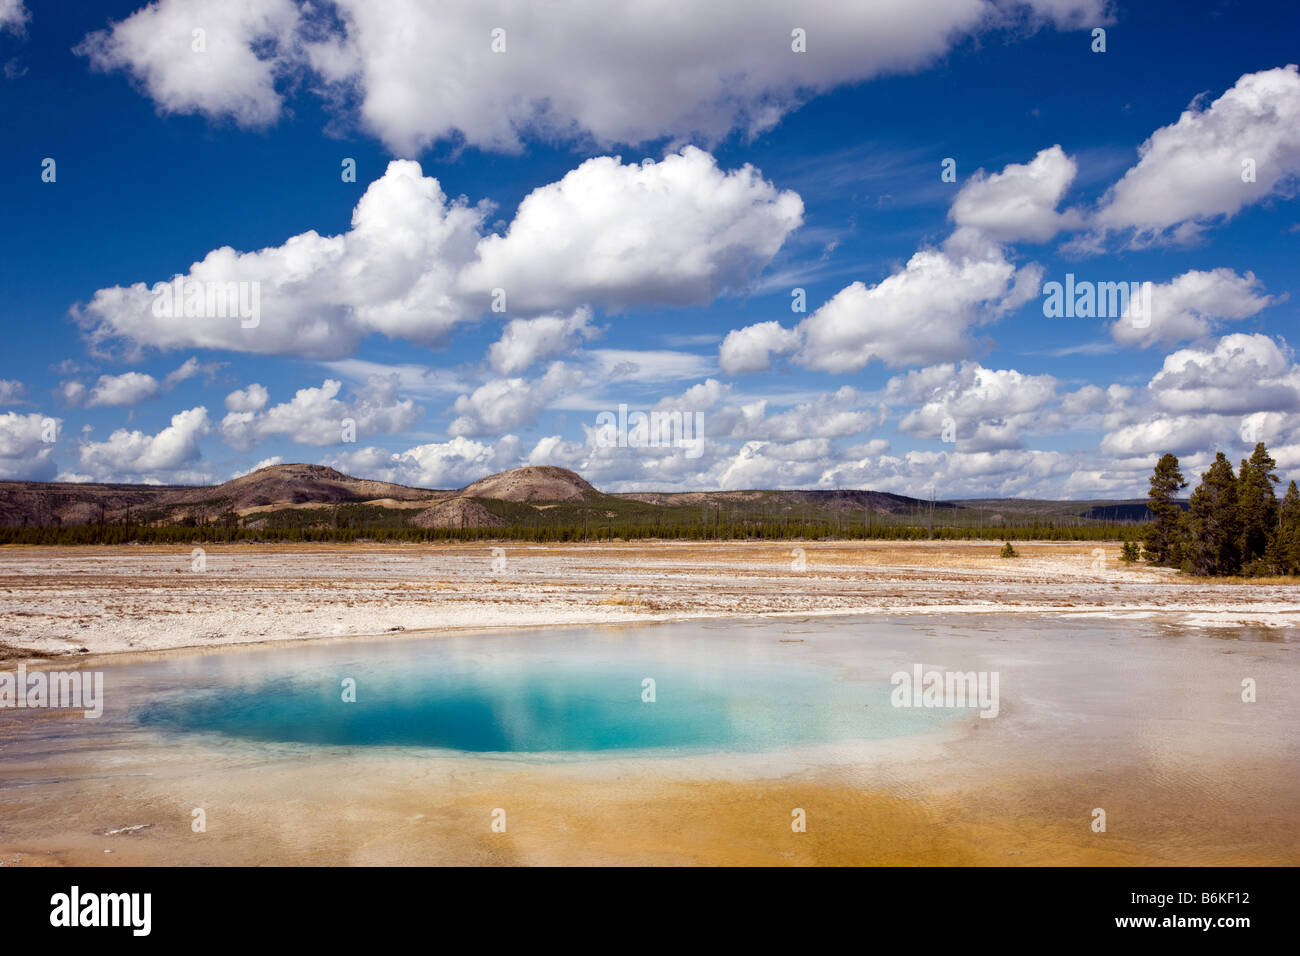 Piscine opale, Midway Geyser Basin, Parc National de Yellowstone, Wyoming, USA Banque D'Images